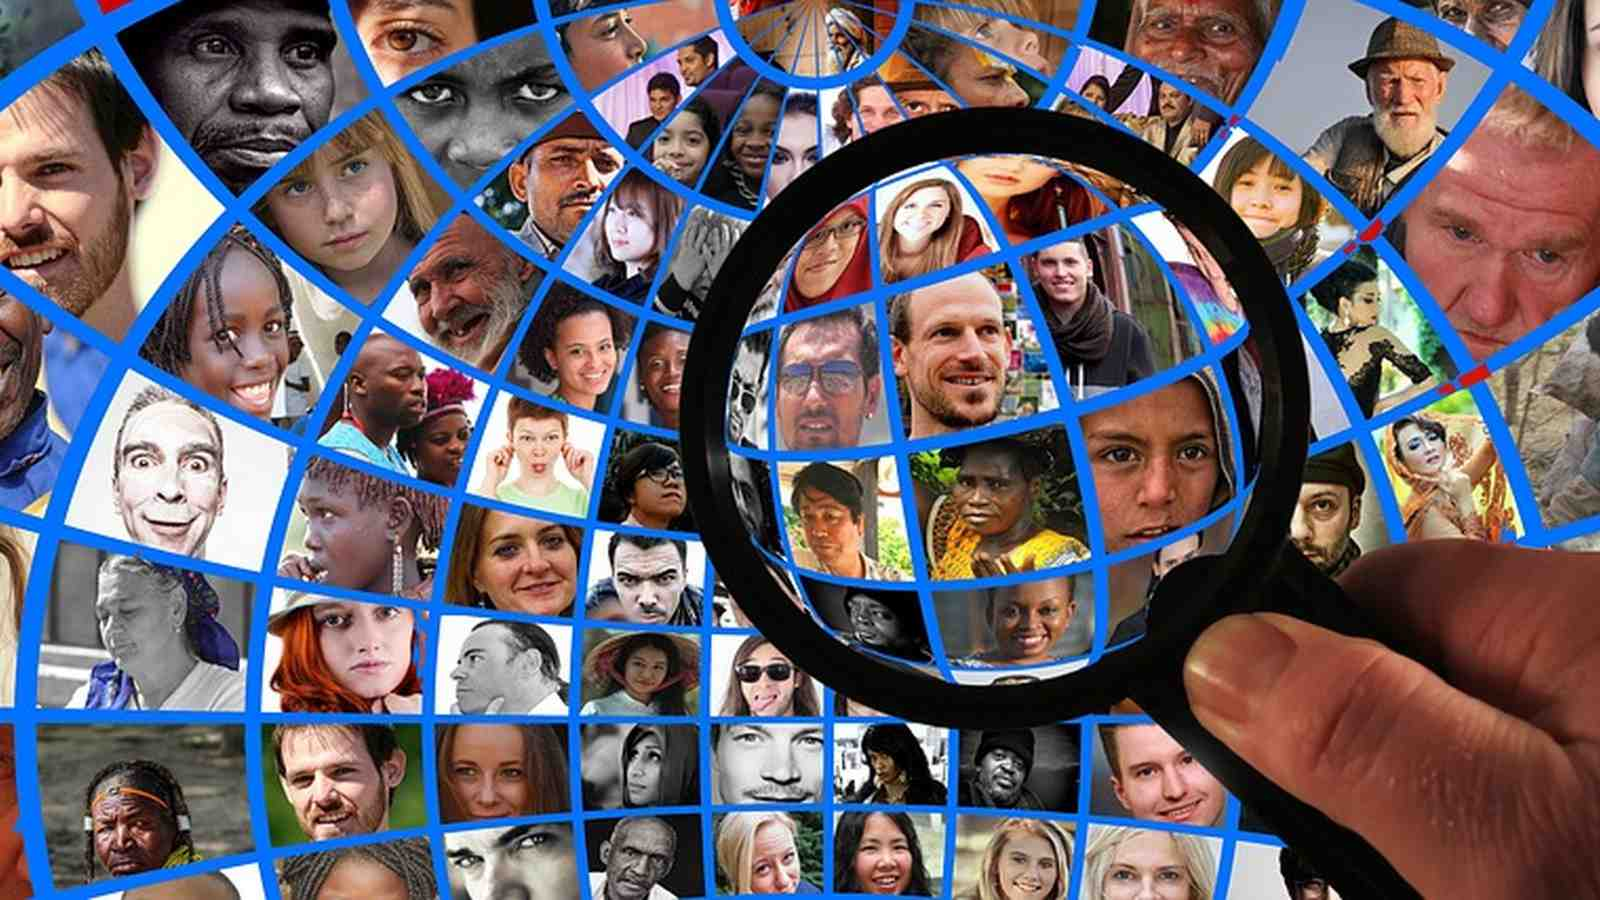 Many faces under a magnifying glass.